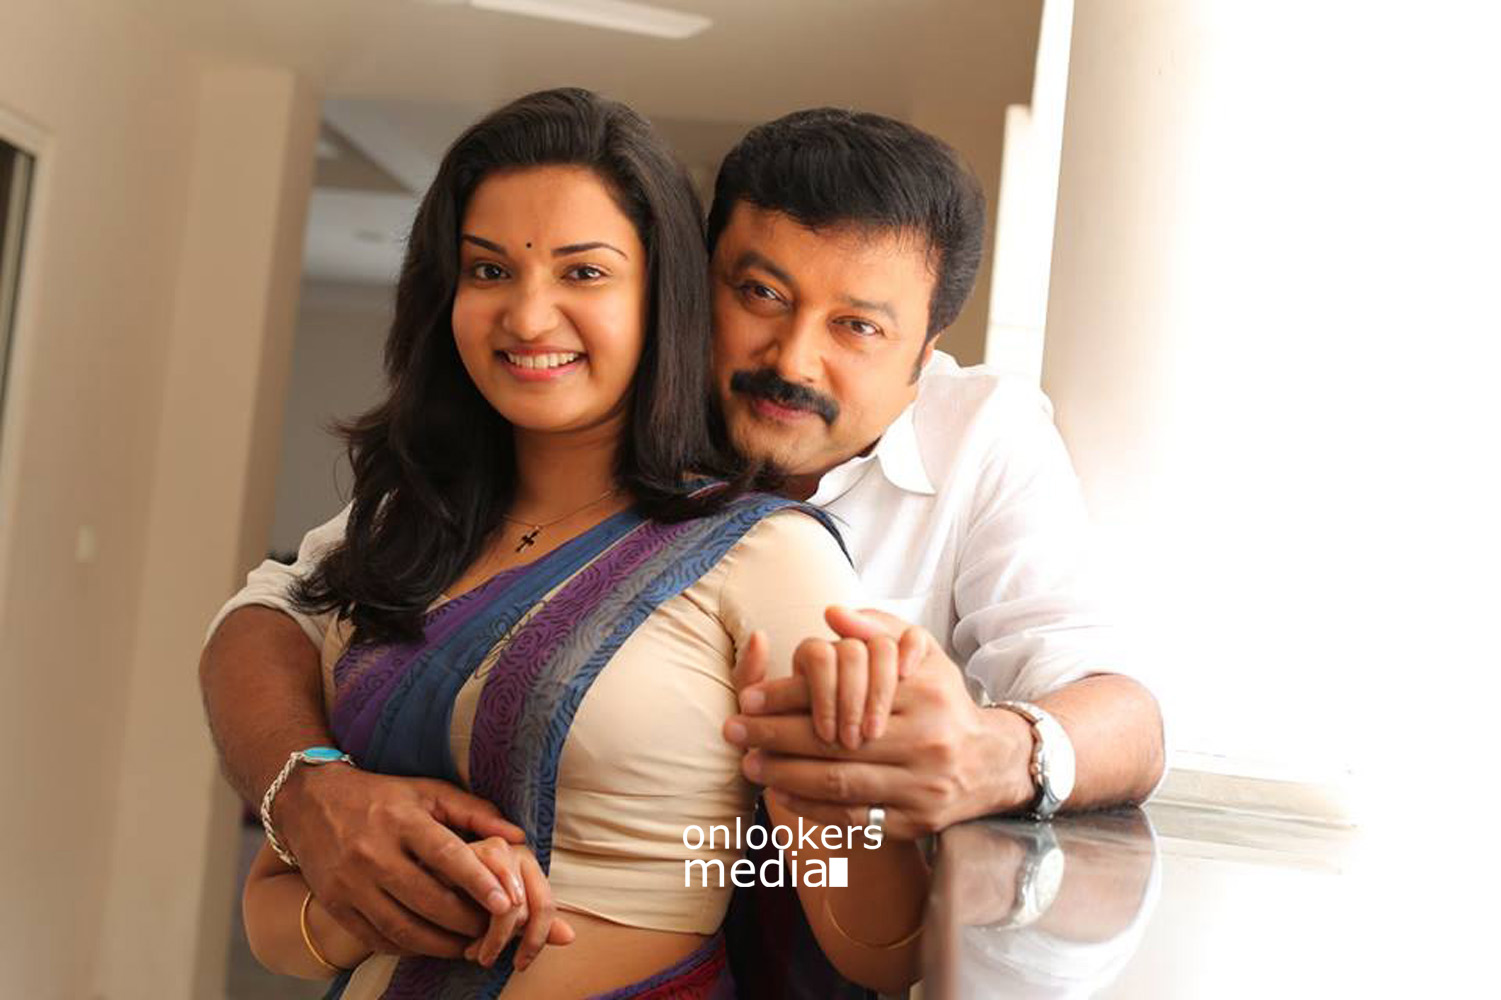 Honey Rose in Sir CP Malayalam Movie-Jayaram-Onlookers Media